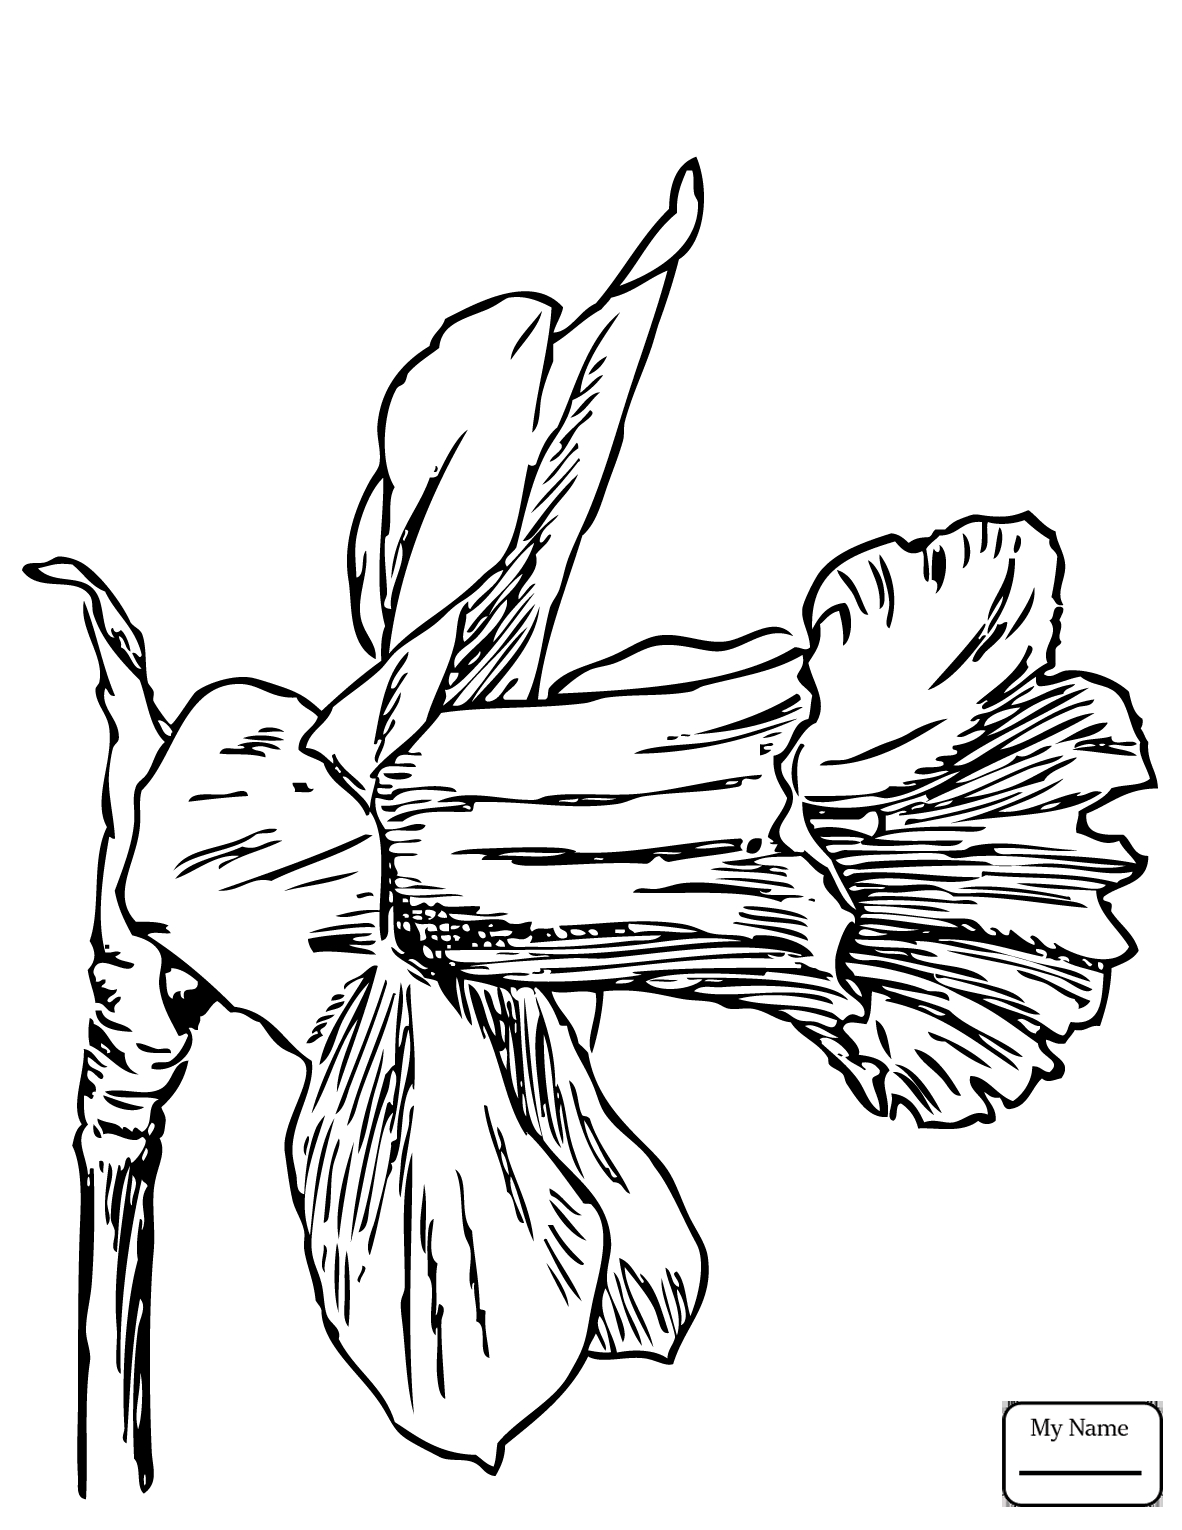 Shocking Coloring Daffodil Narcissus Jonquil for Flower Page Collection Of New Daffodil Flower Coloring Pages Collection Printable